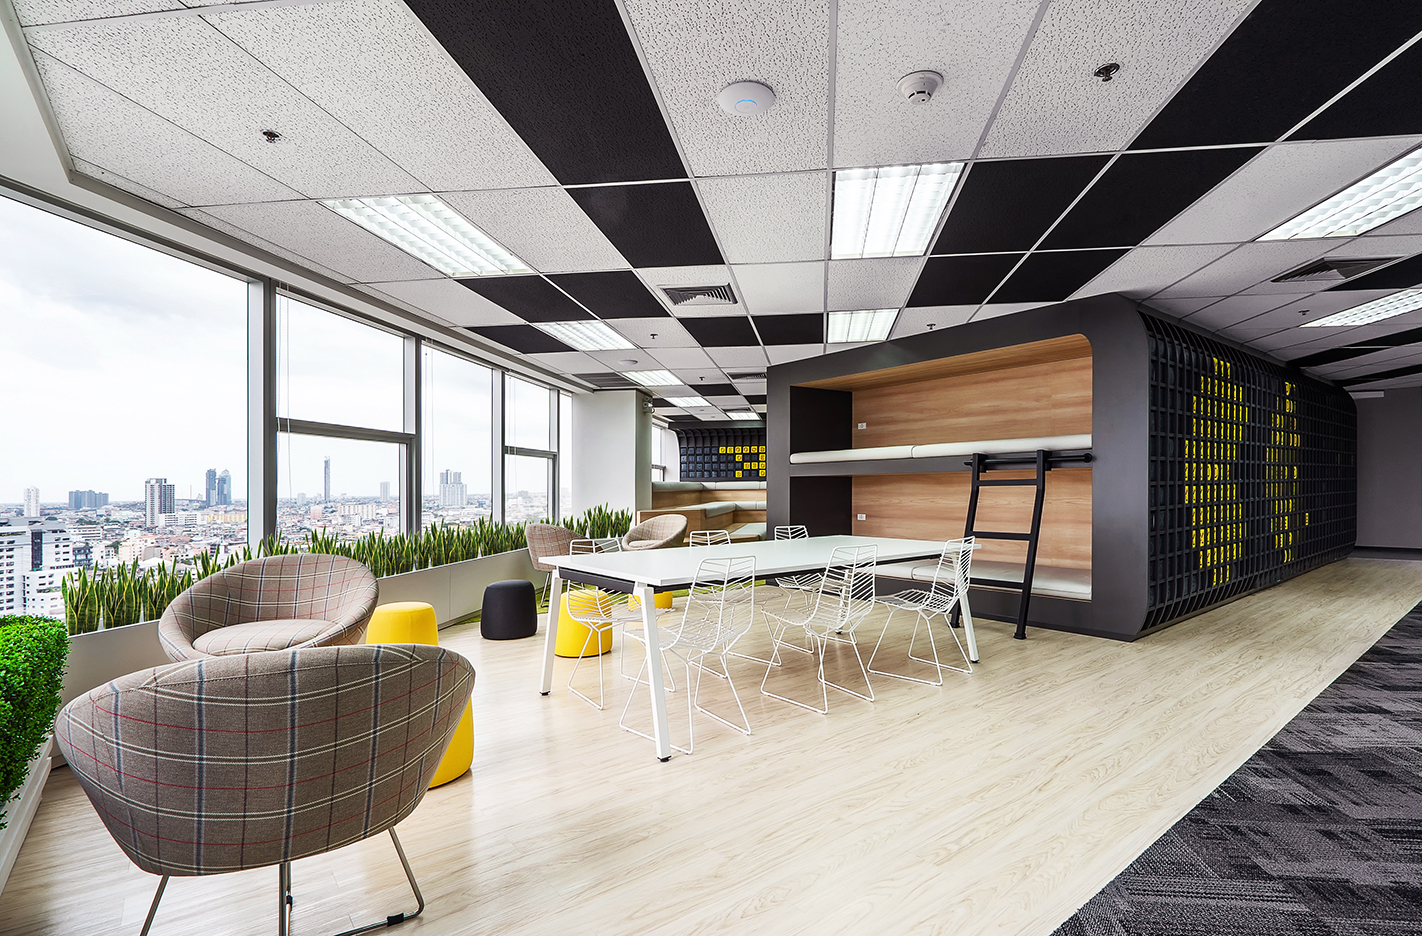 10design ookbee city office interior des